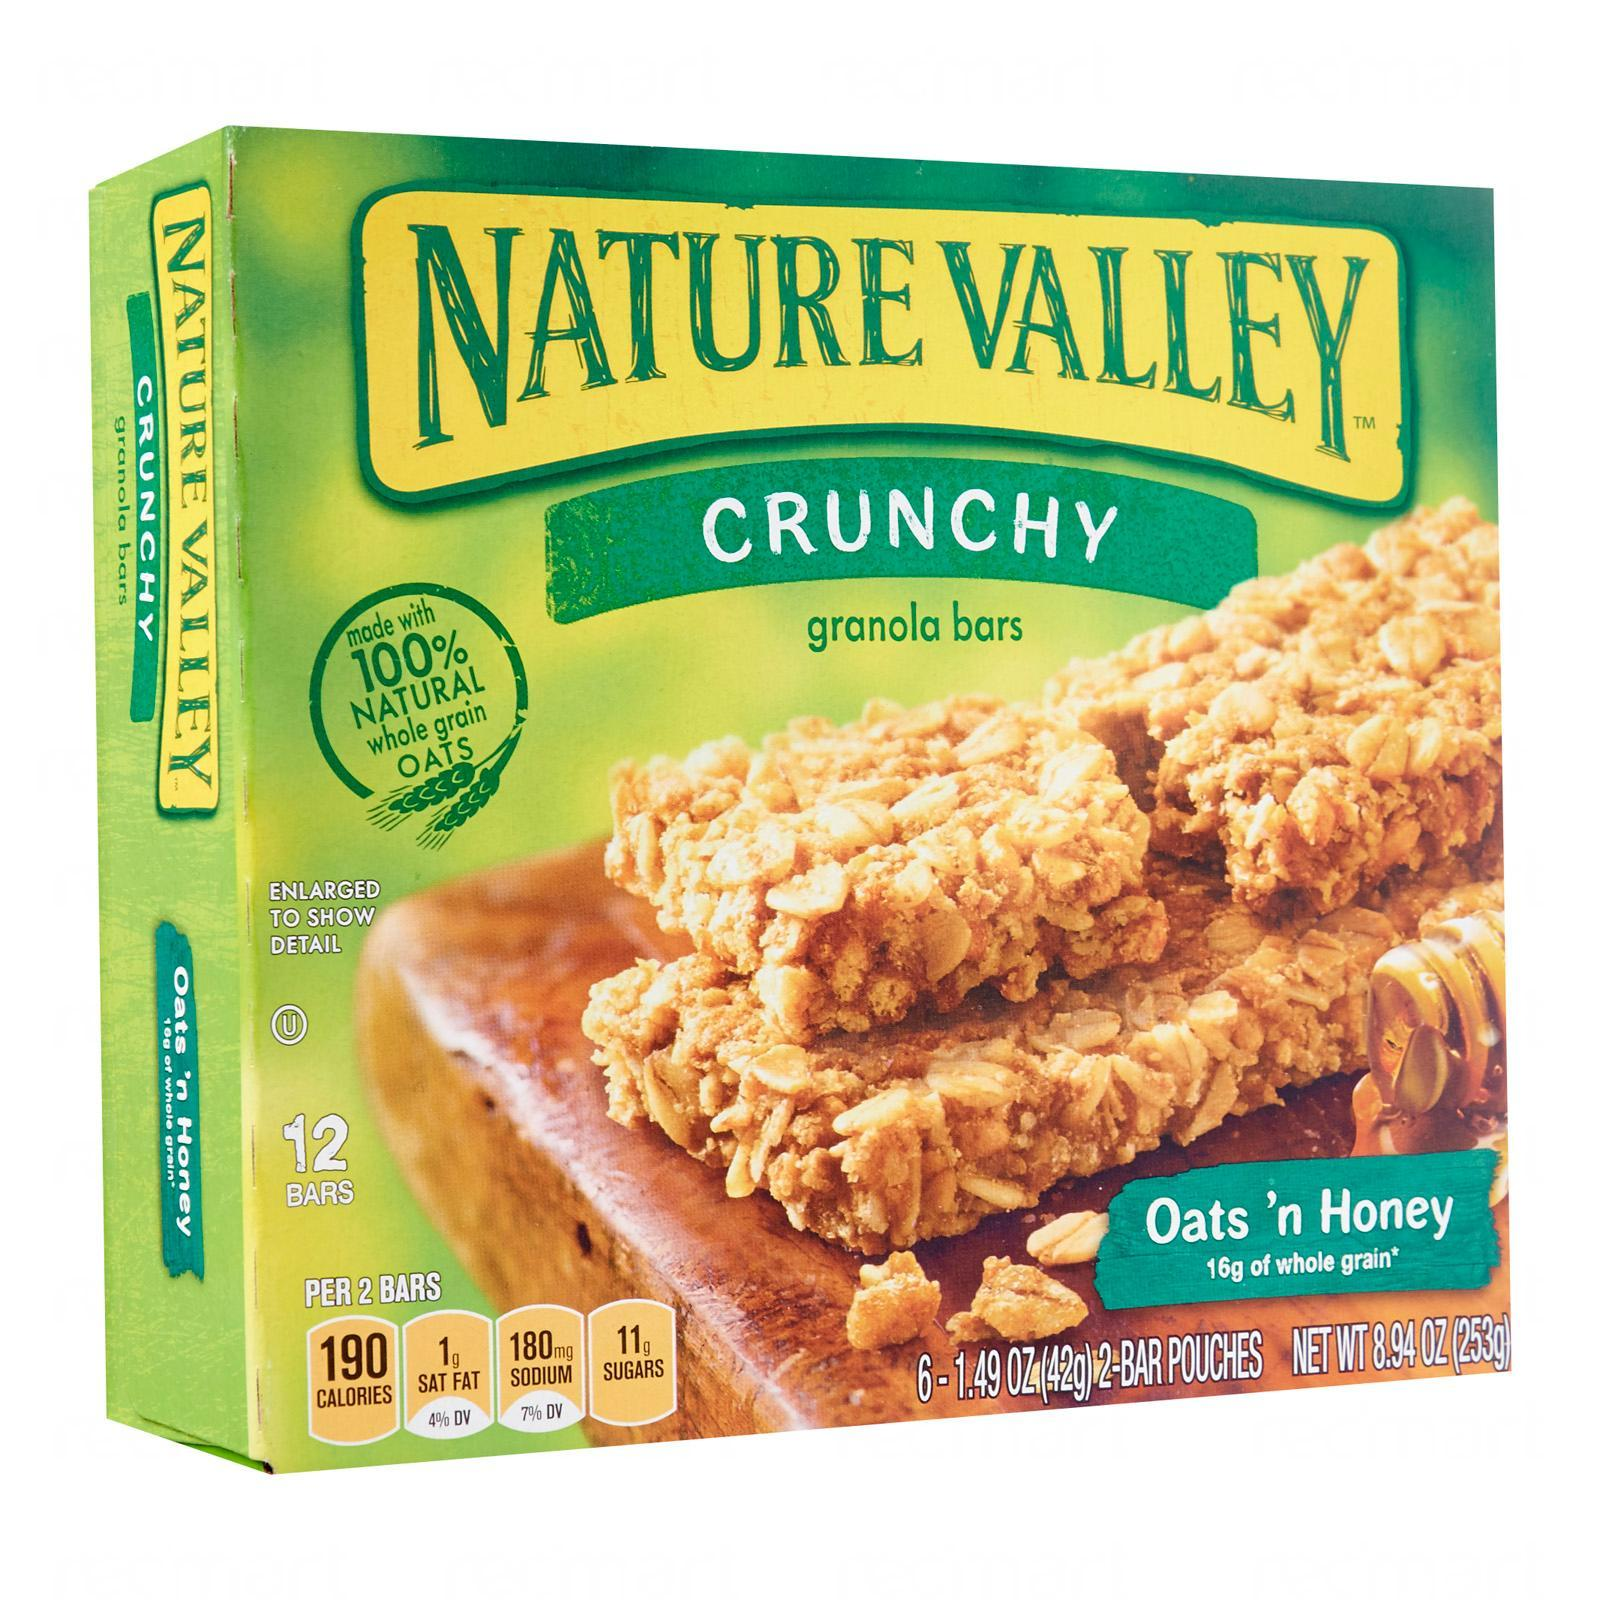 Nature Valley Oats N Honey Crunchy Granola Bars By Redmart.